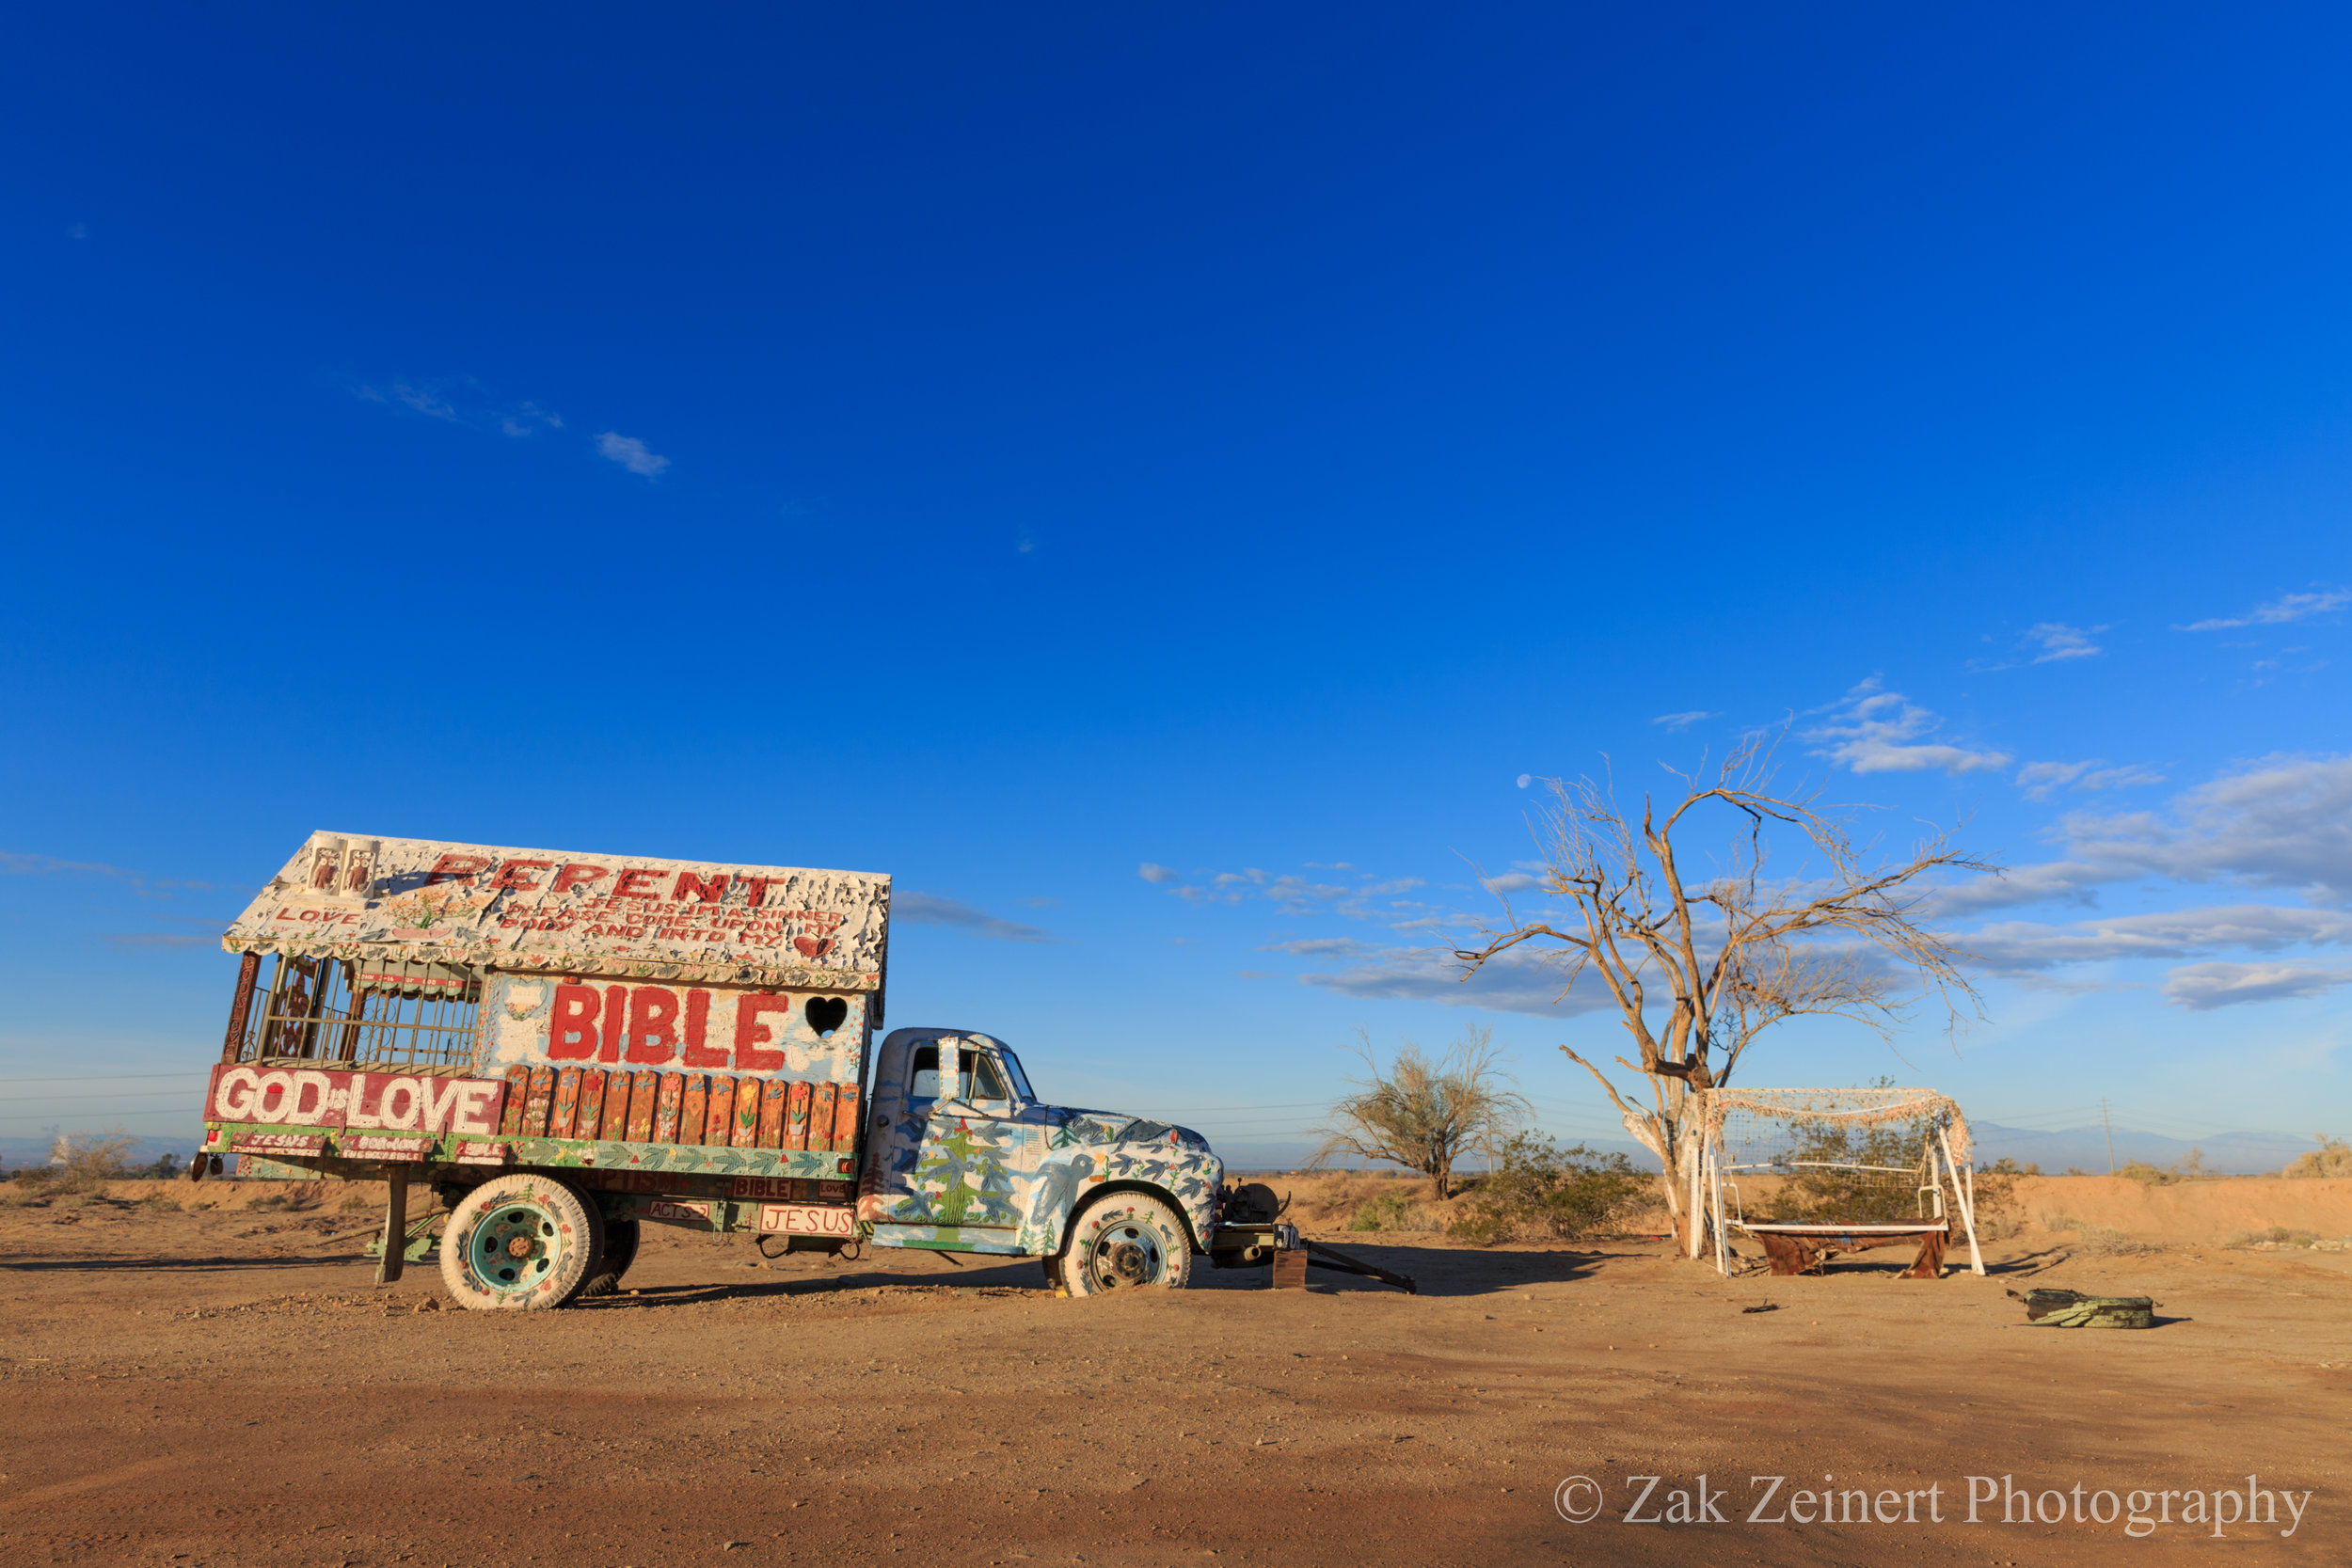 Truck at Salvation Mountain